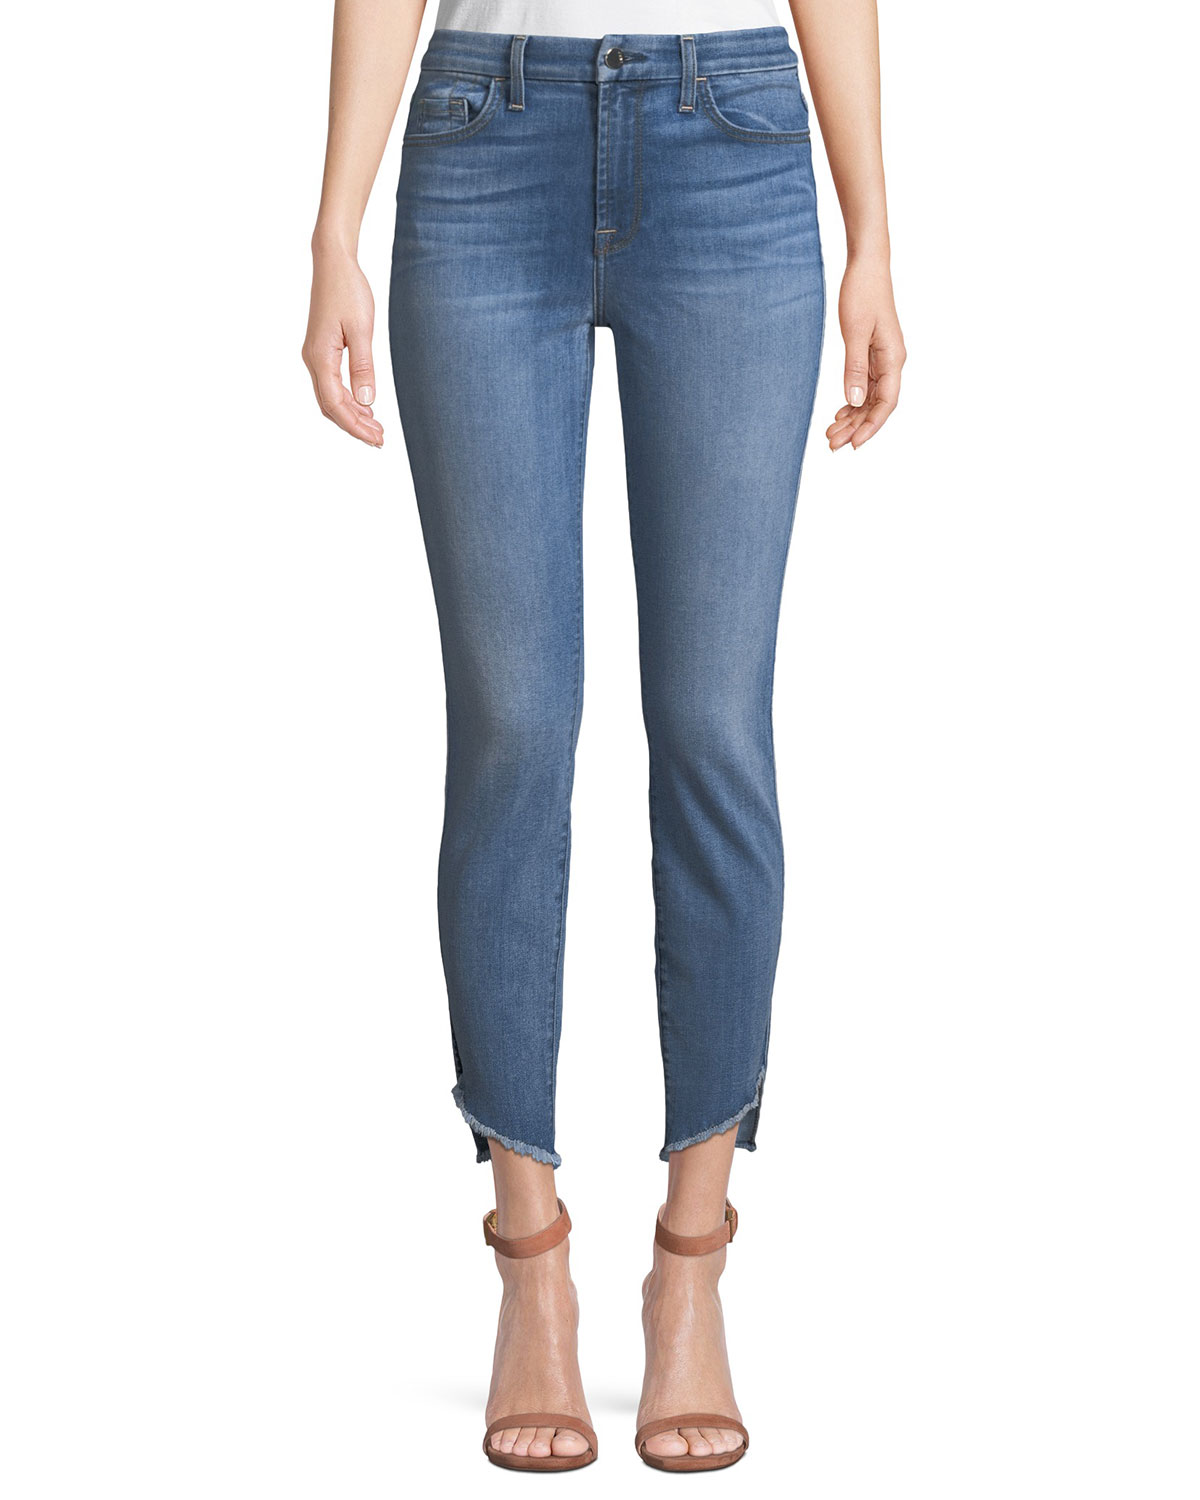 JEN7 SKINNY ANKLE JEANS W/ ANGLED RAW-EDGES